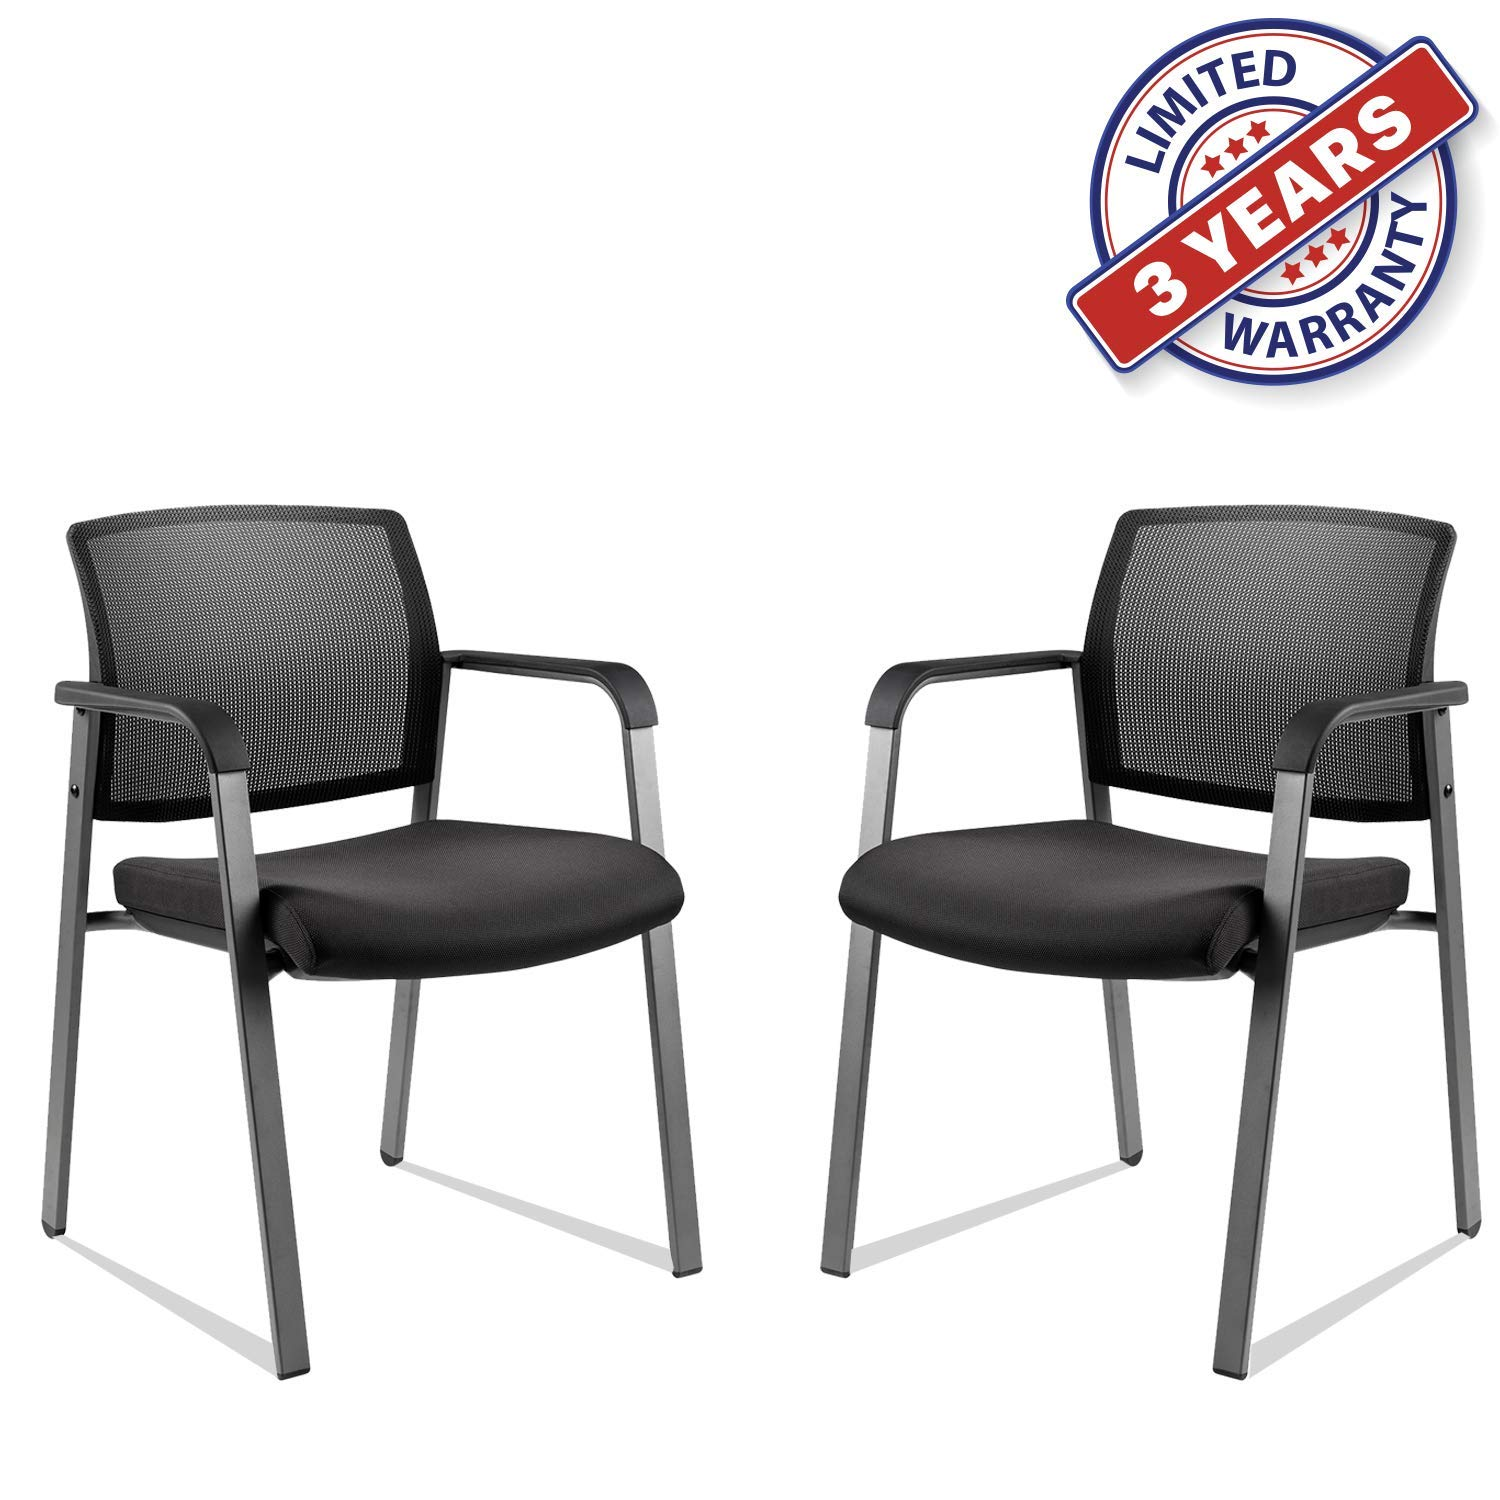 CLATINA Mesh Back Stack Arm Chairs with Upholstered Fabric Seat and Ergonomic Lumbar Support for Office School Church Guest Reception Black 2 Pack Set by CLATINA